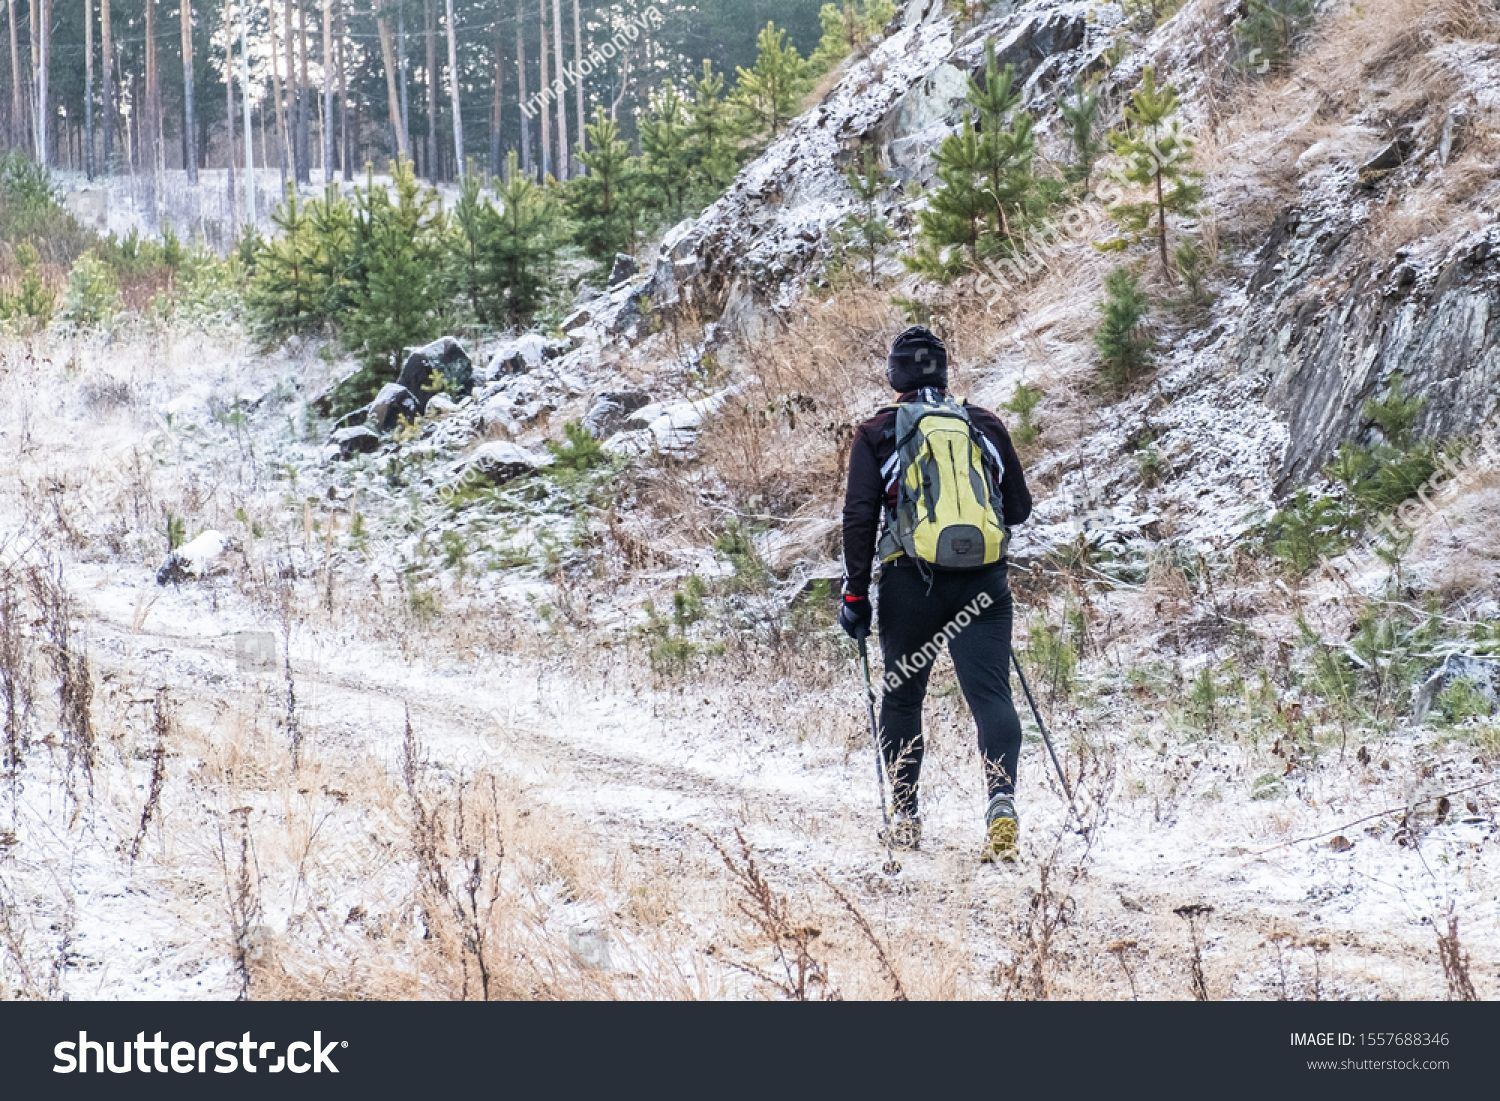 A Man With A Backpack With Scandinavian Walking Sticks In A Sports Black Suit And Sneakers Goes Uphill Through The Suits And Sneakers Backpacks Walking Sticks